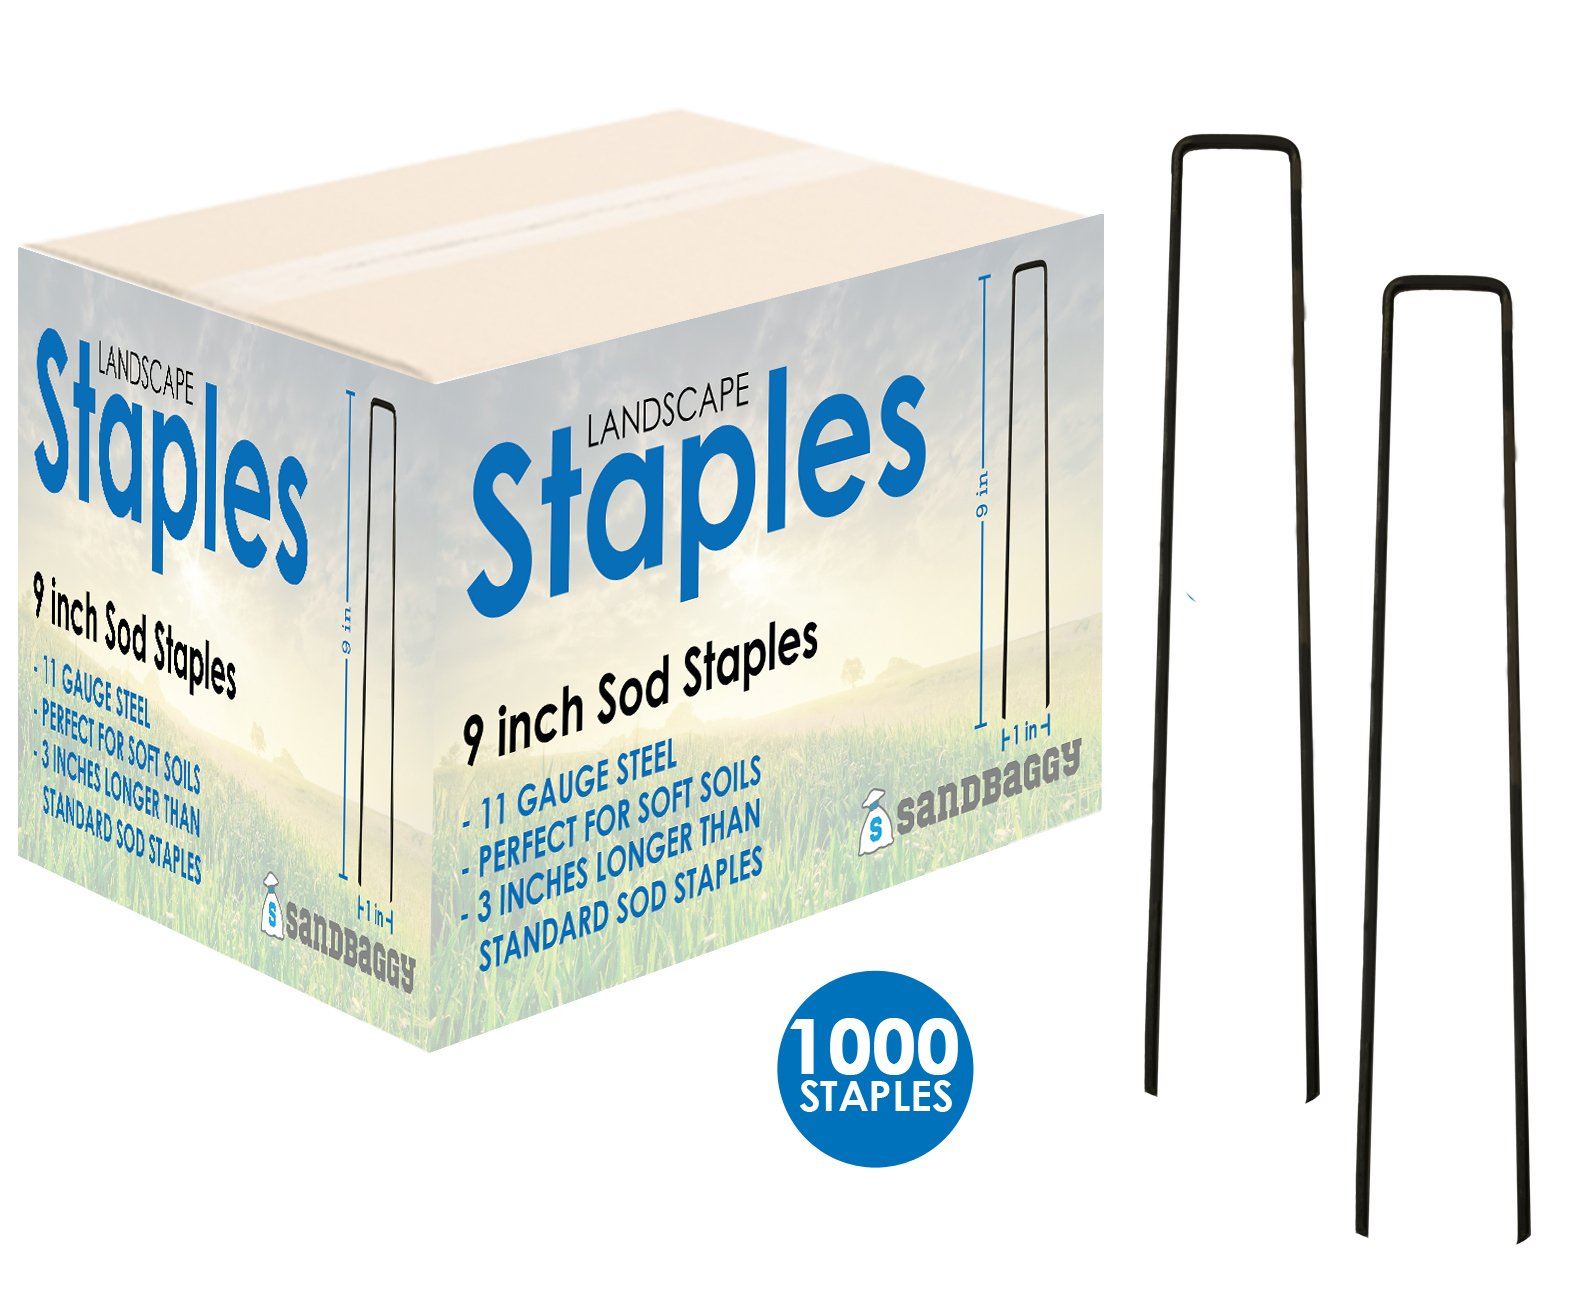 Sandbaggy Landscape Staples 9-inch EXTRA LONG ~ Landscape Fabric Pins -Garden Staples Heavy Duty - Ground Cover Staples - Fence Anchors - Lawn Nails - Garden Stakes - Lawn Staples by (1000 Staples)